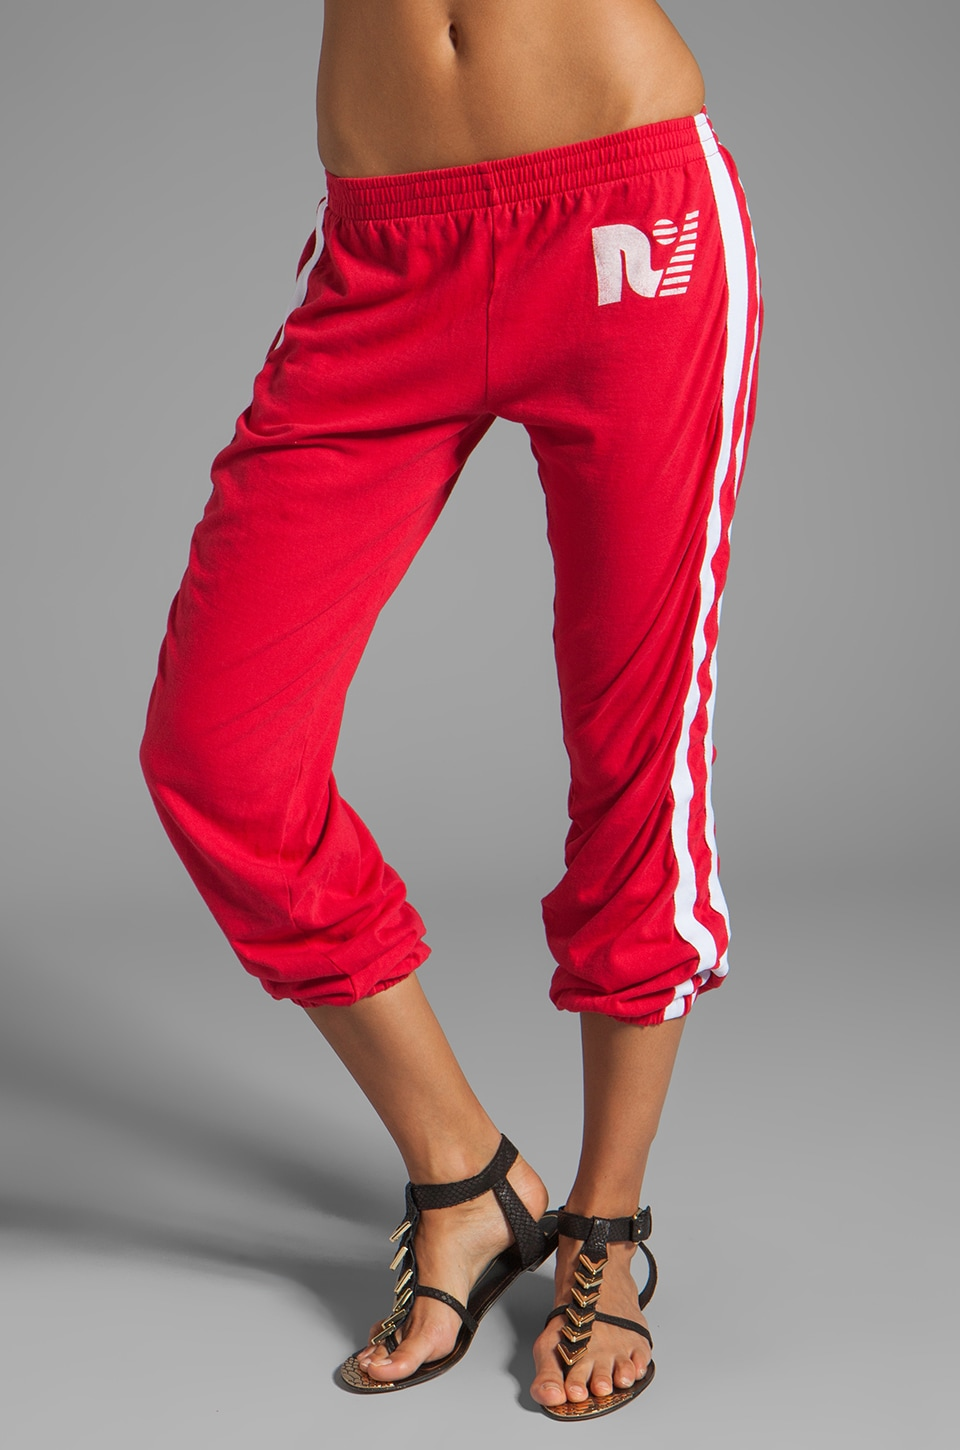 Rebel Yell Warm Ups in Vintage Red